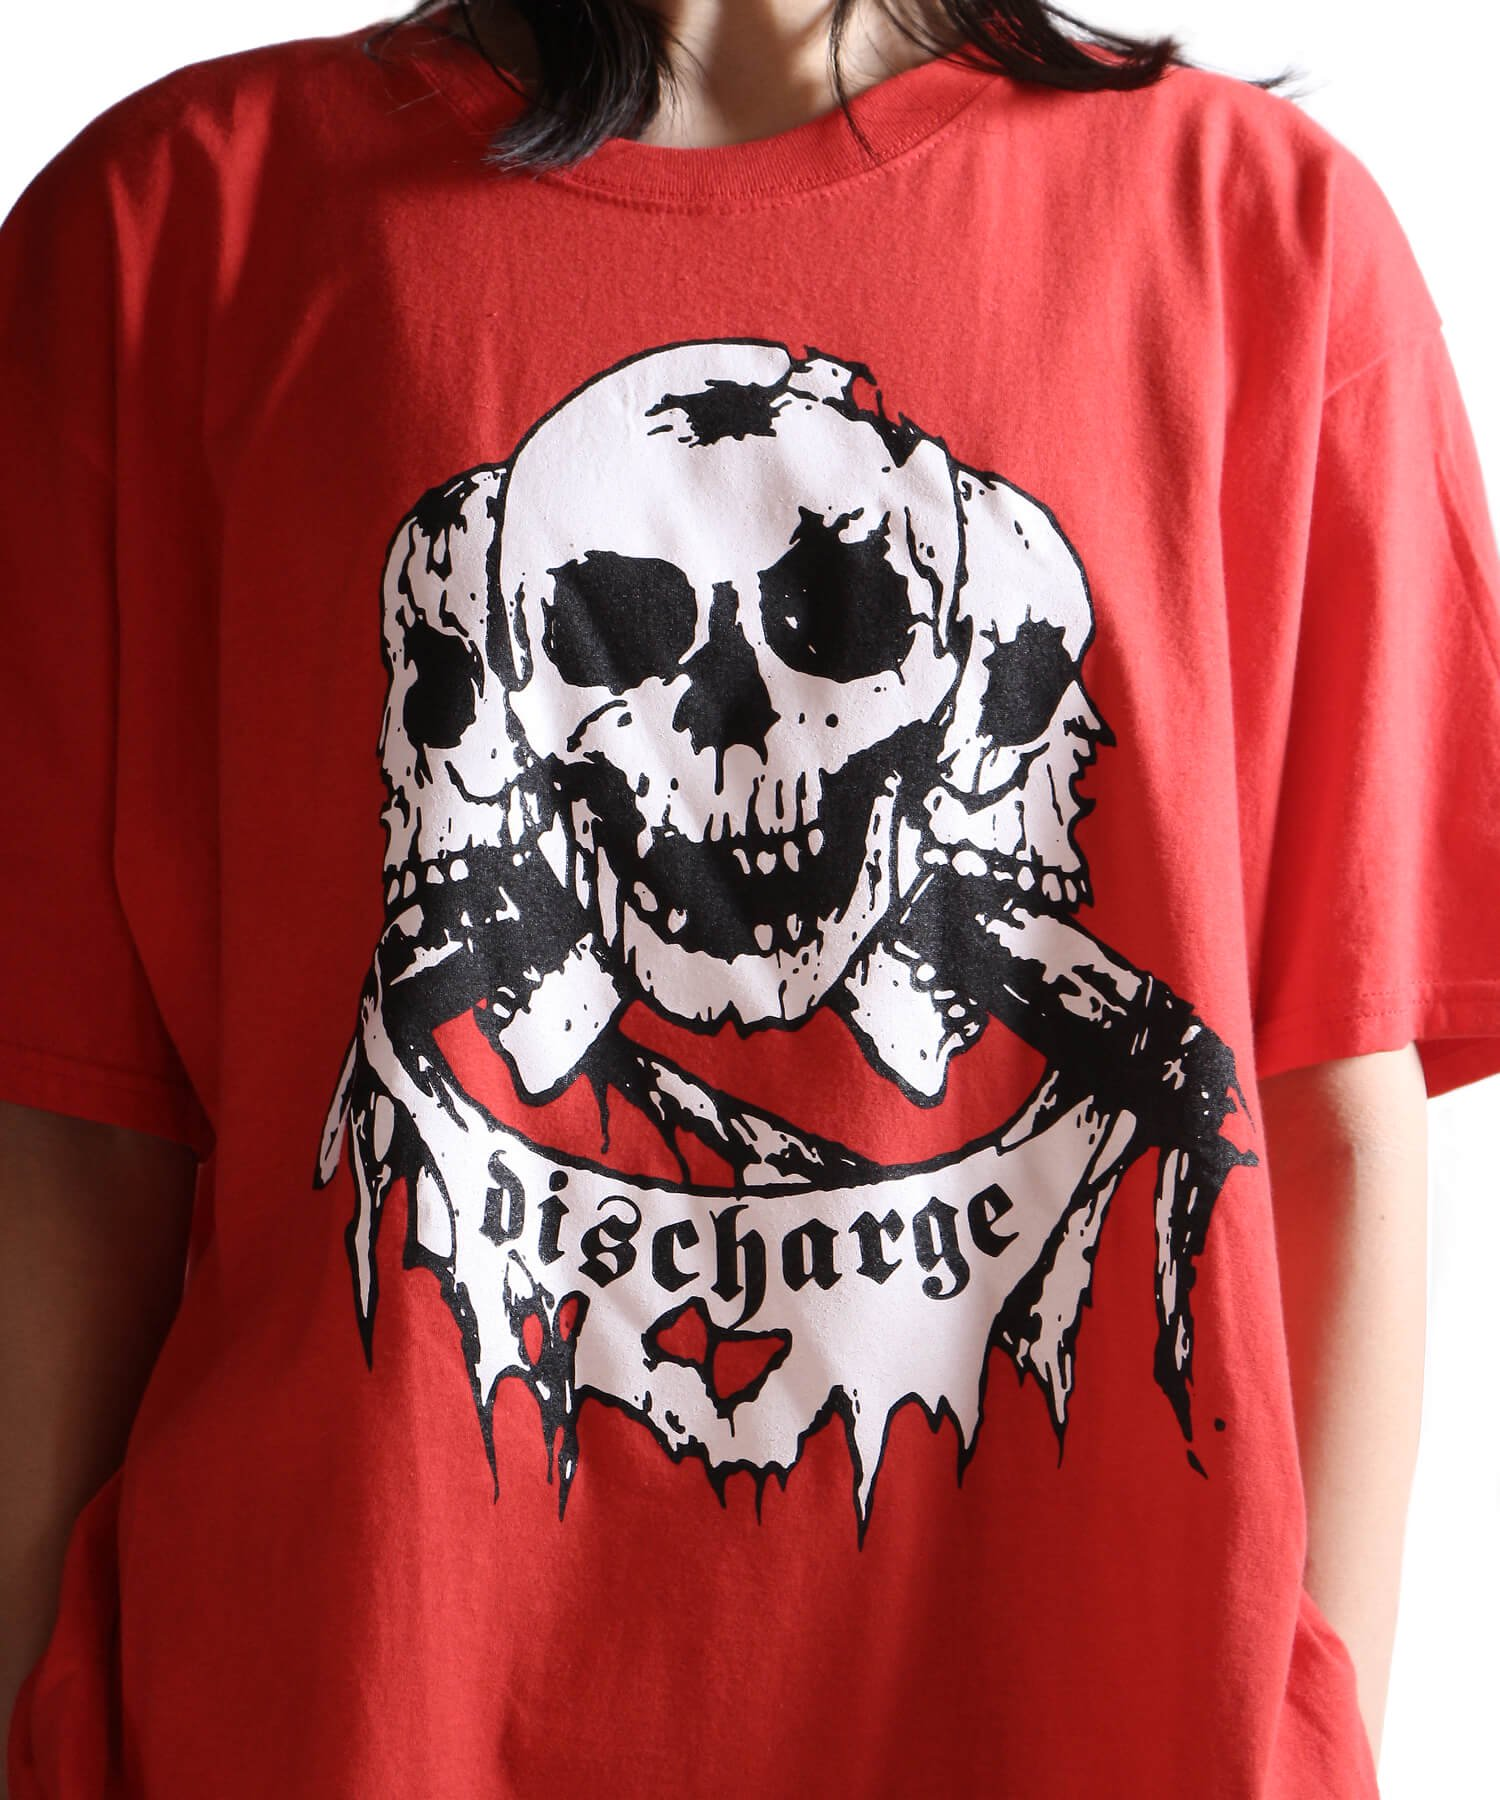 Official Artist Goods / バンドTなど |DISCHARGE / ディスチャージ:BORN TO DIE T-SHIRT (BLACK/RED) 商品画像19